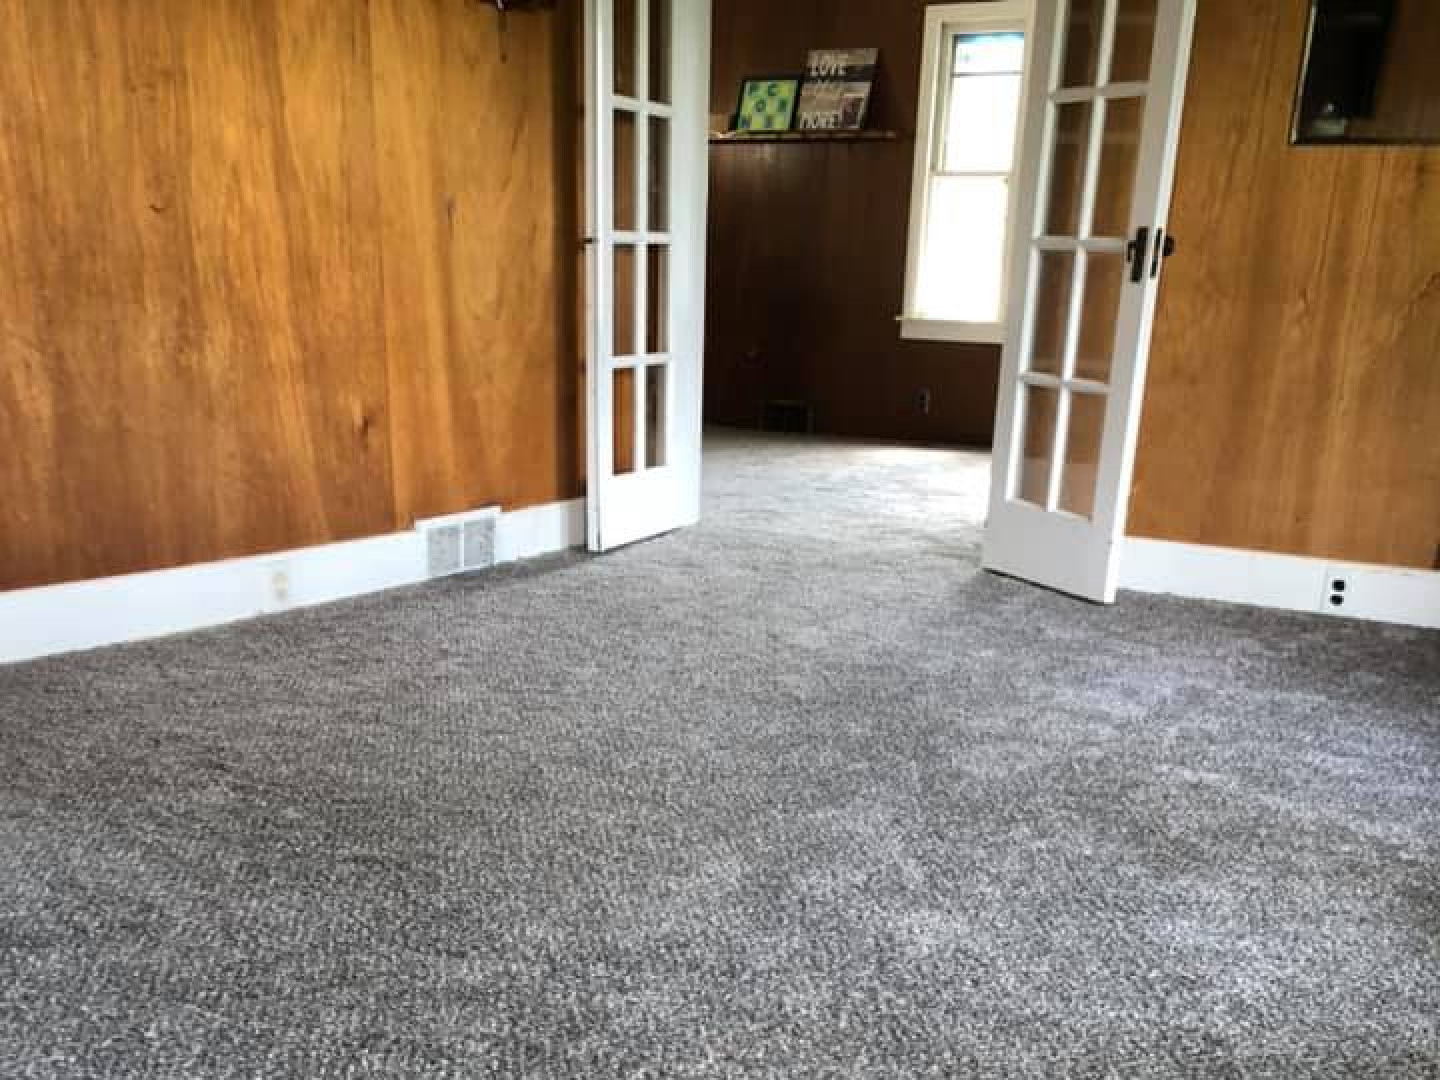 Is Your Carpet in Bad Shape?